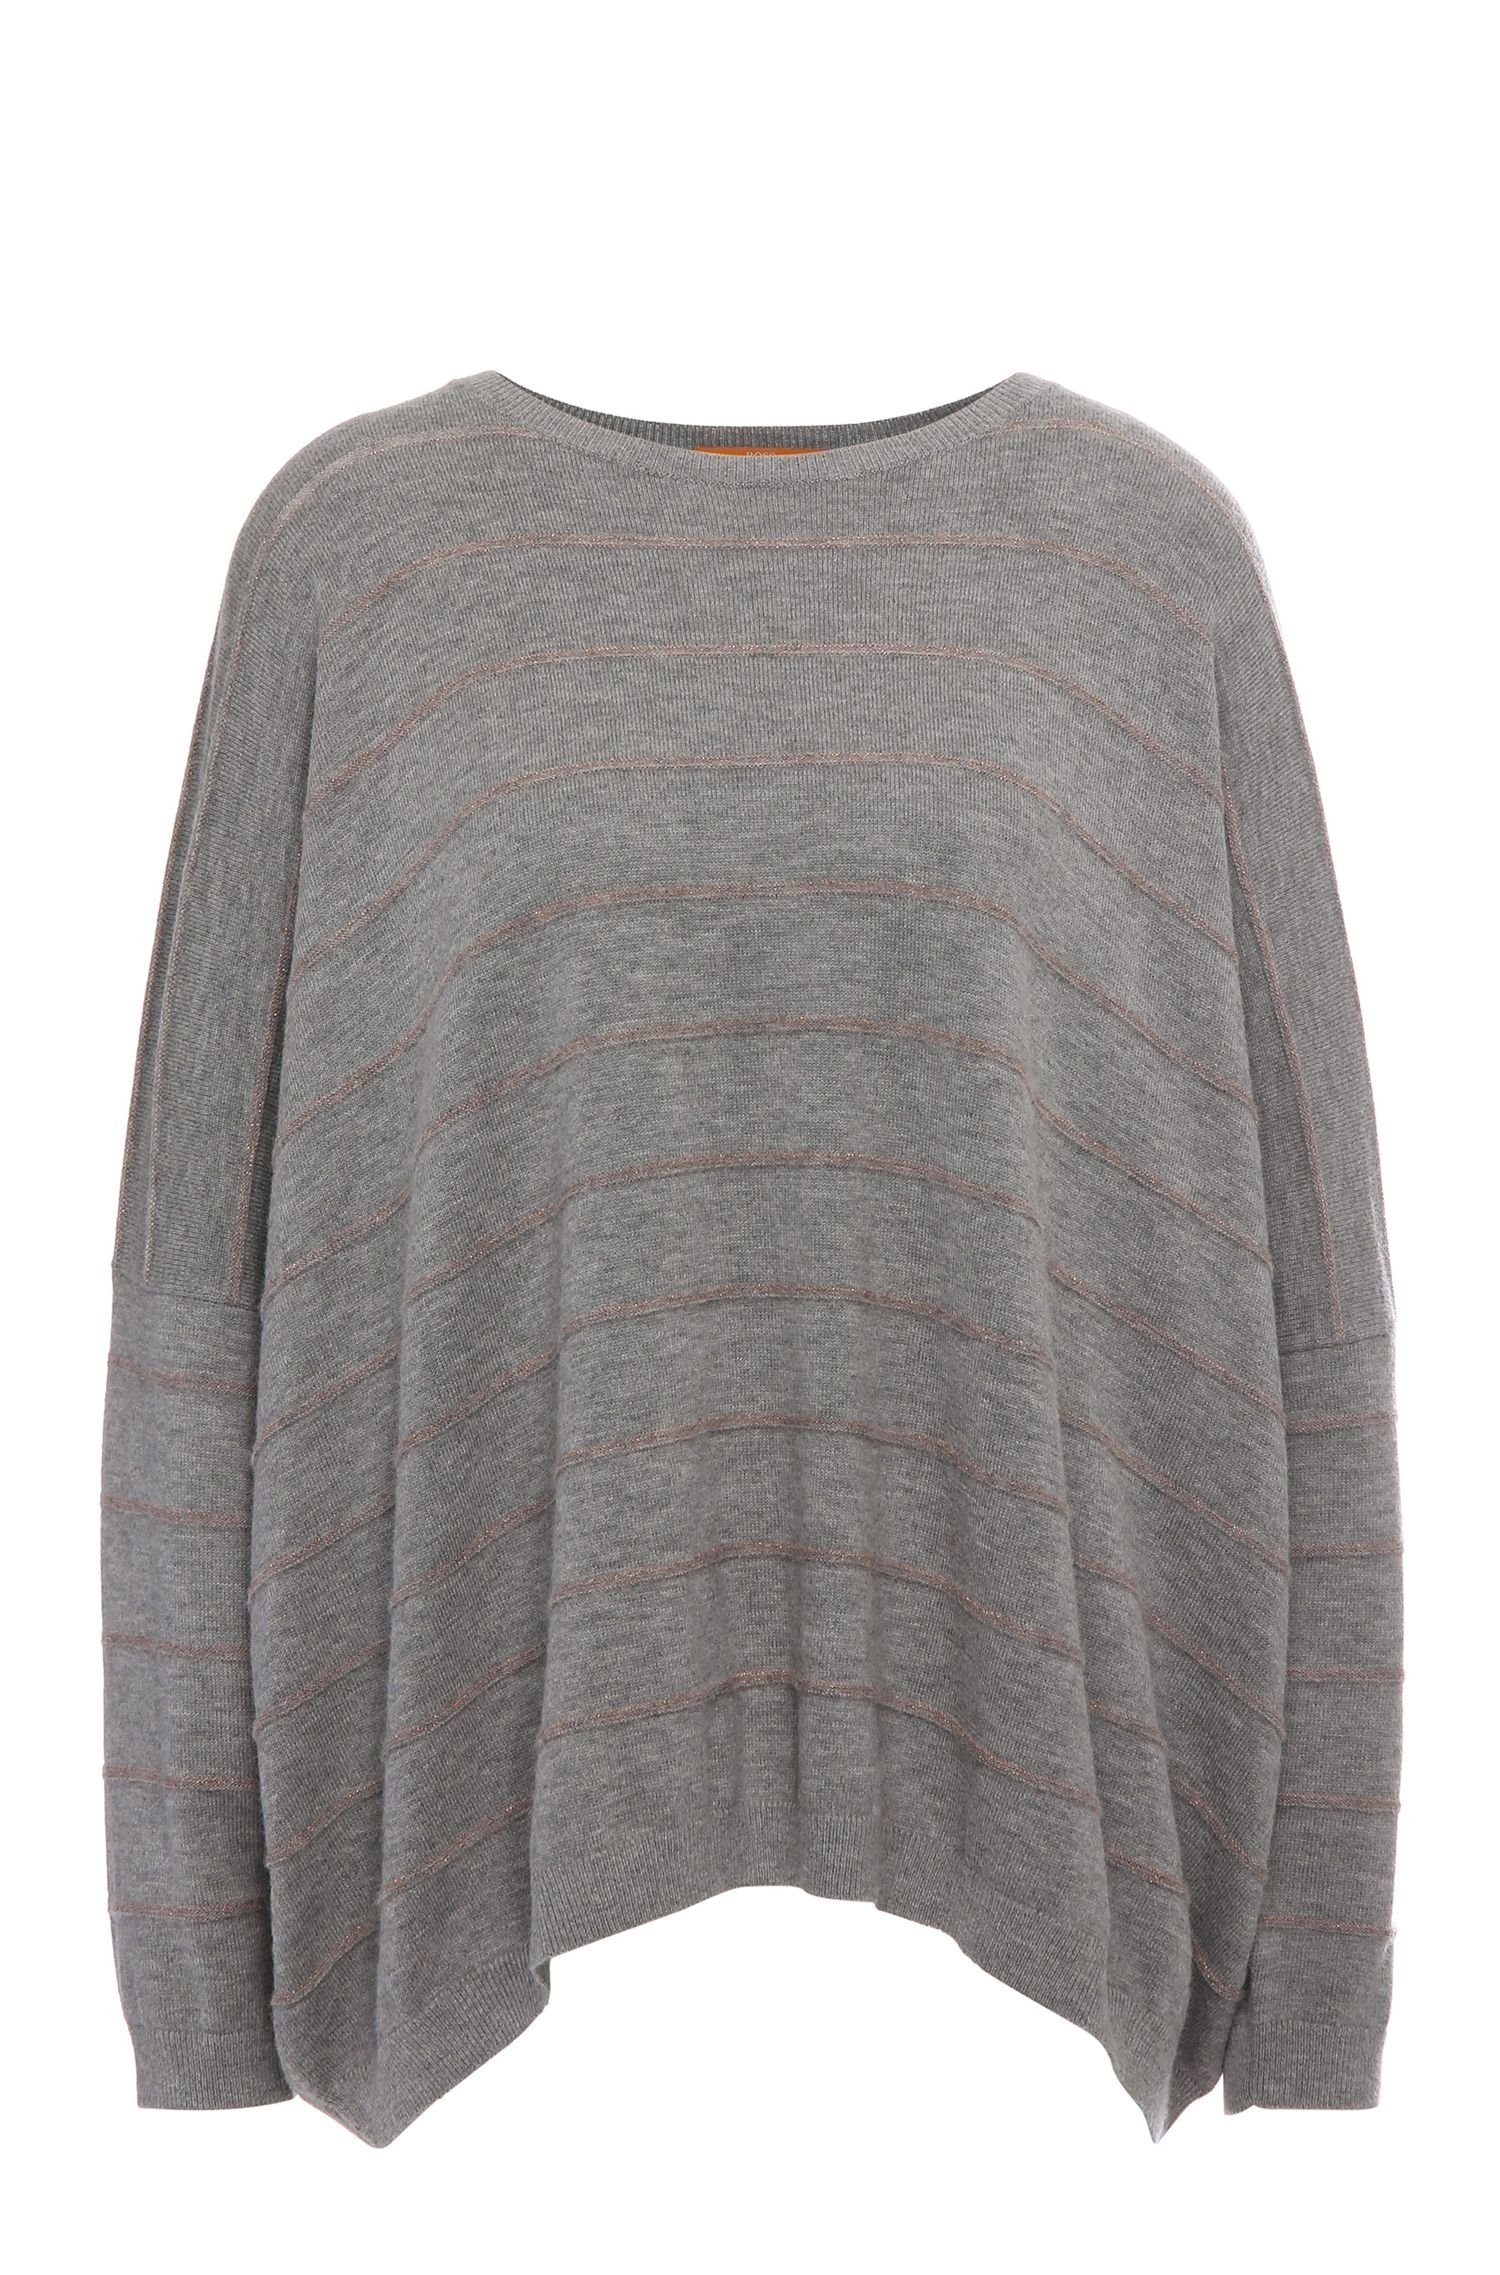 Maglione a righe relaxed fit in materiali misti con lana vergine, alpaca e fibre metalliche: 'Izusal'